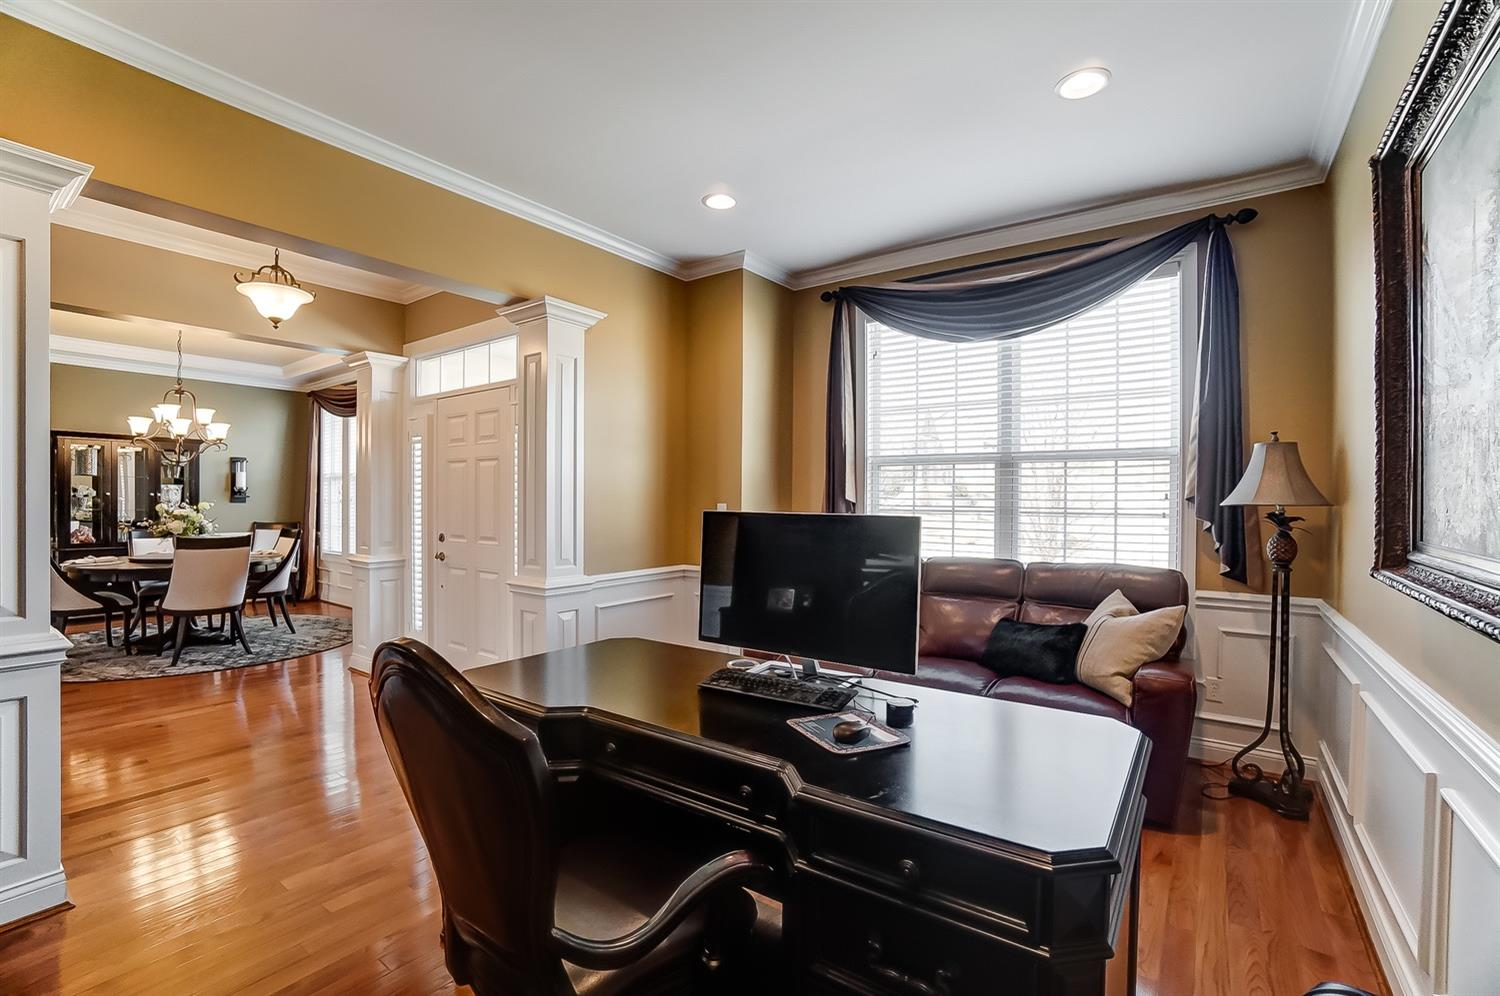 Extensive trim work throughout: crown molding, wainscoting and chair rails through entry, formal dining and study.